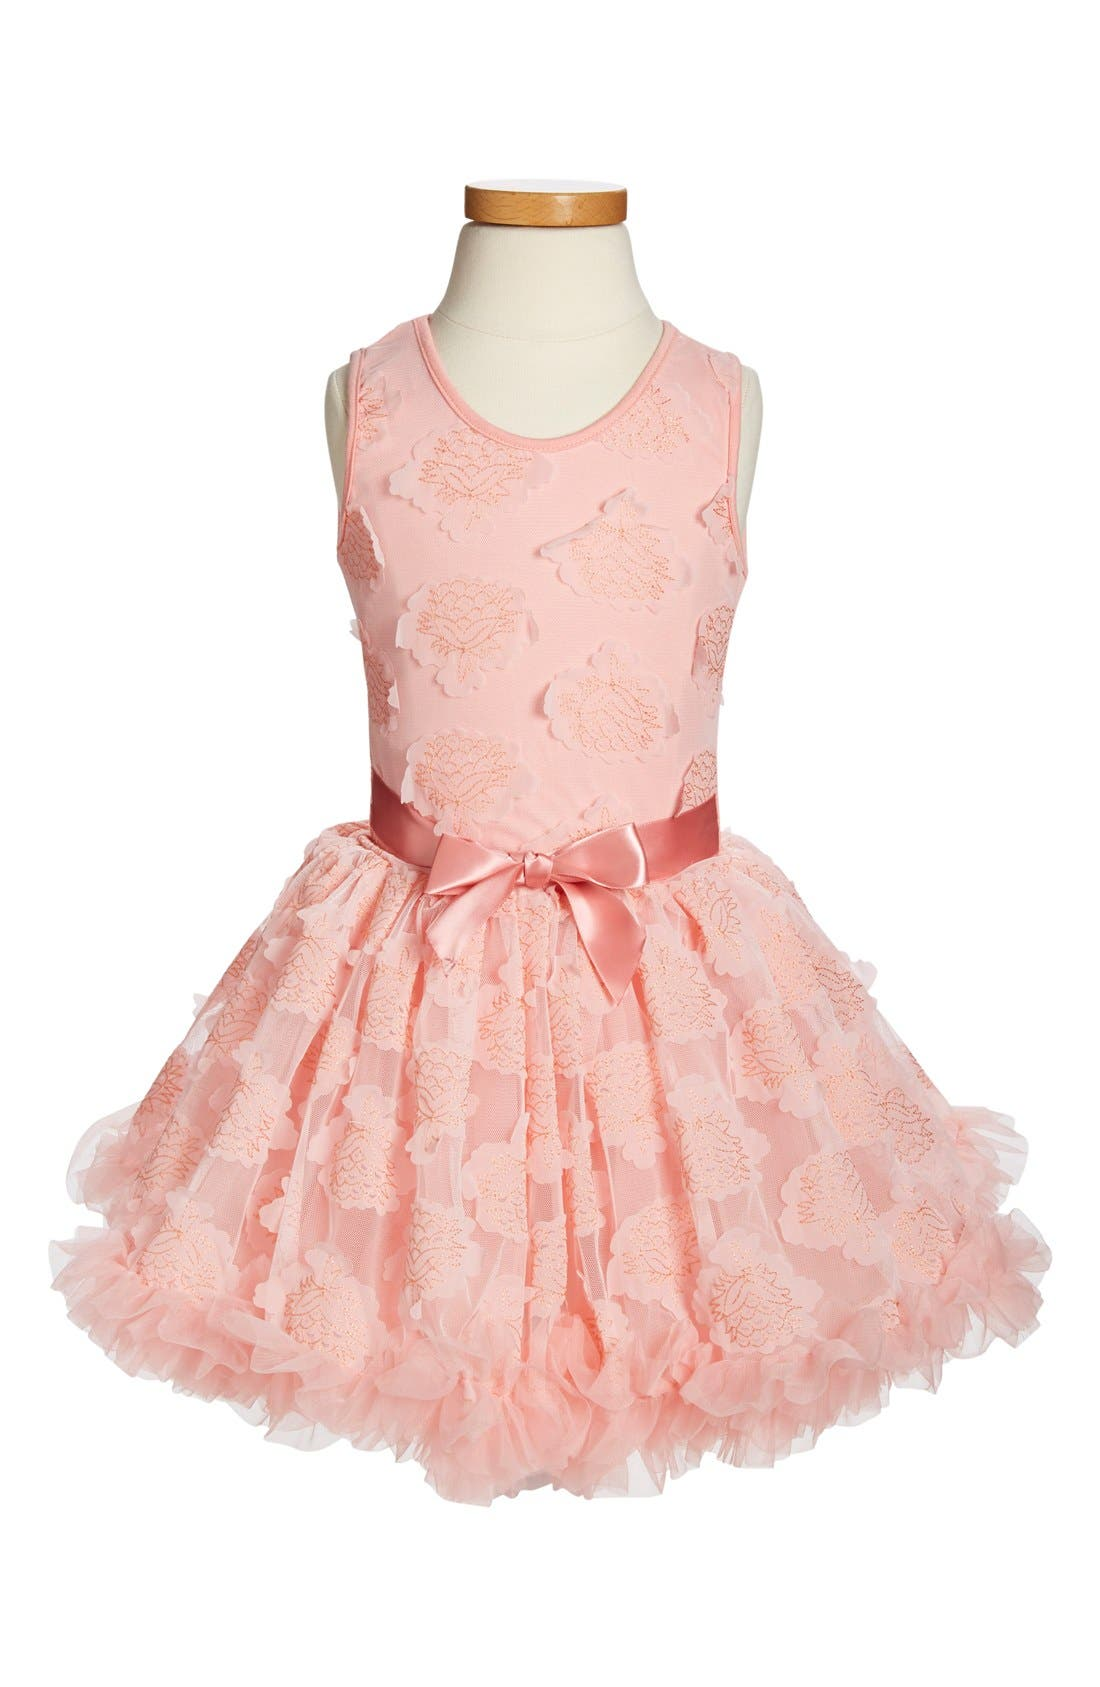 Popatu Peach Flower Petal Pettidress (Toddler Girls & Little Girls)